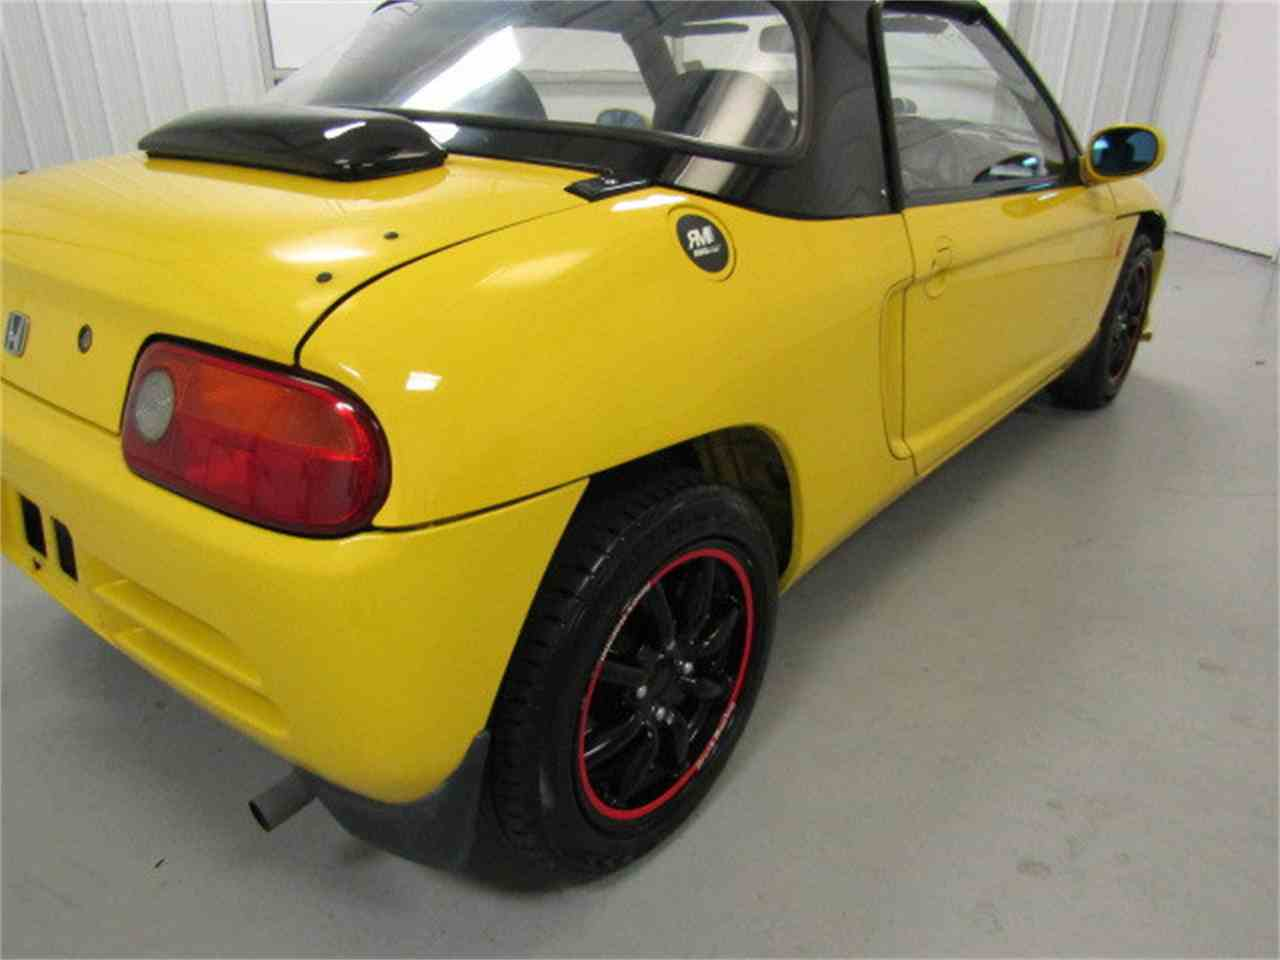 Large Picture of 1991 Honda Beat located in Virginia - $6,991.00 Offered by Duncan Imports & Classic Cars - JM2Z